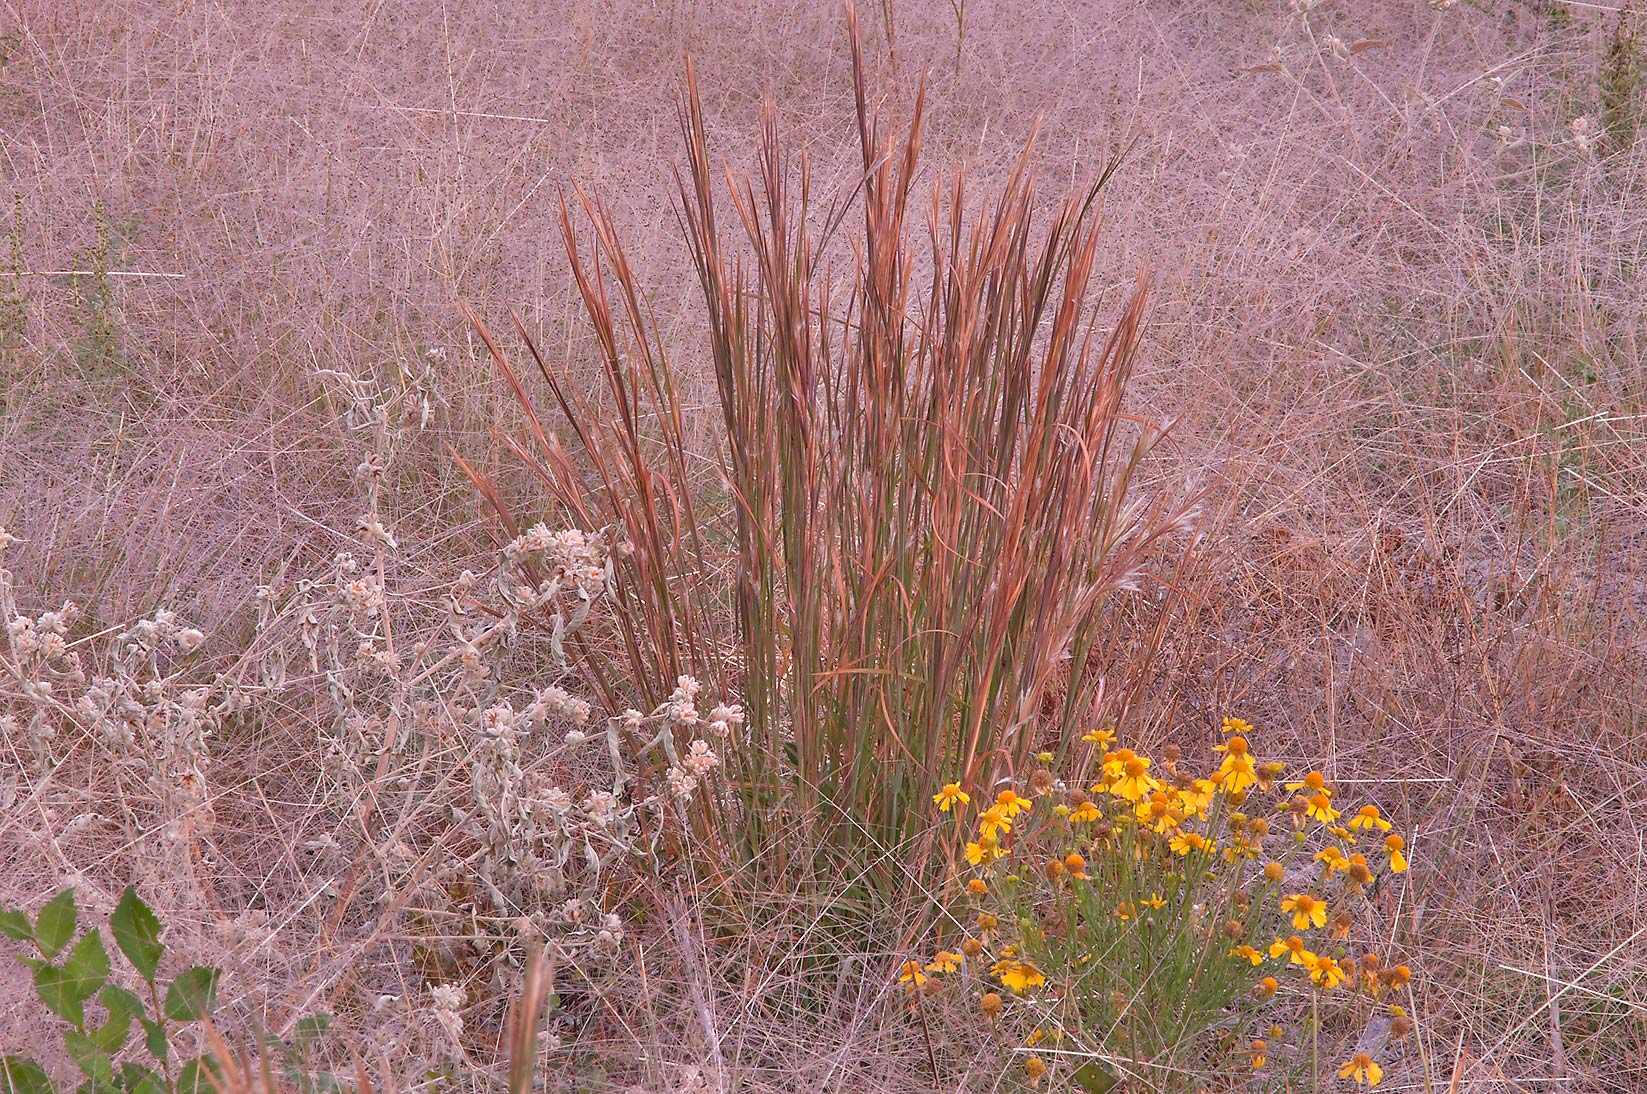 Bluestem grass and sneezeweed on utility cutting in Lake Bryan Park. Bryan, Texas